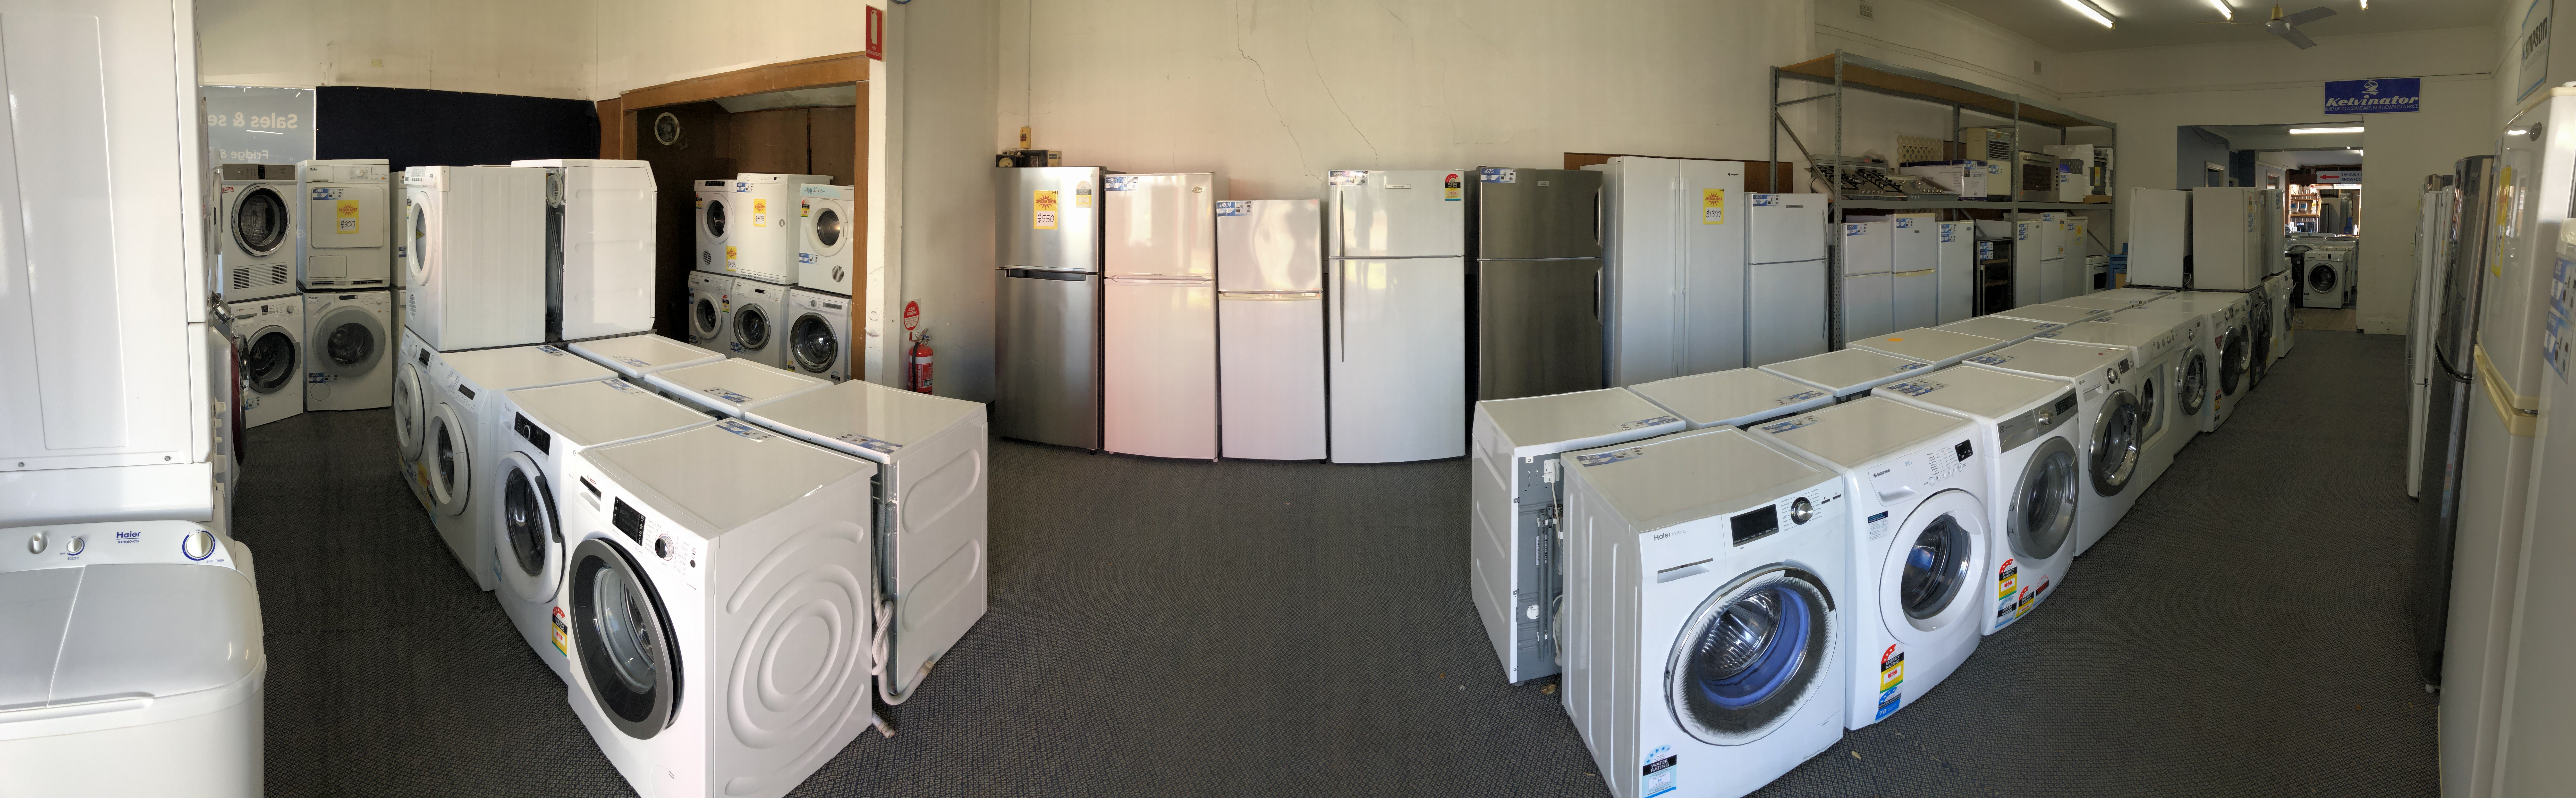 About Electrical Whitegoods Centre